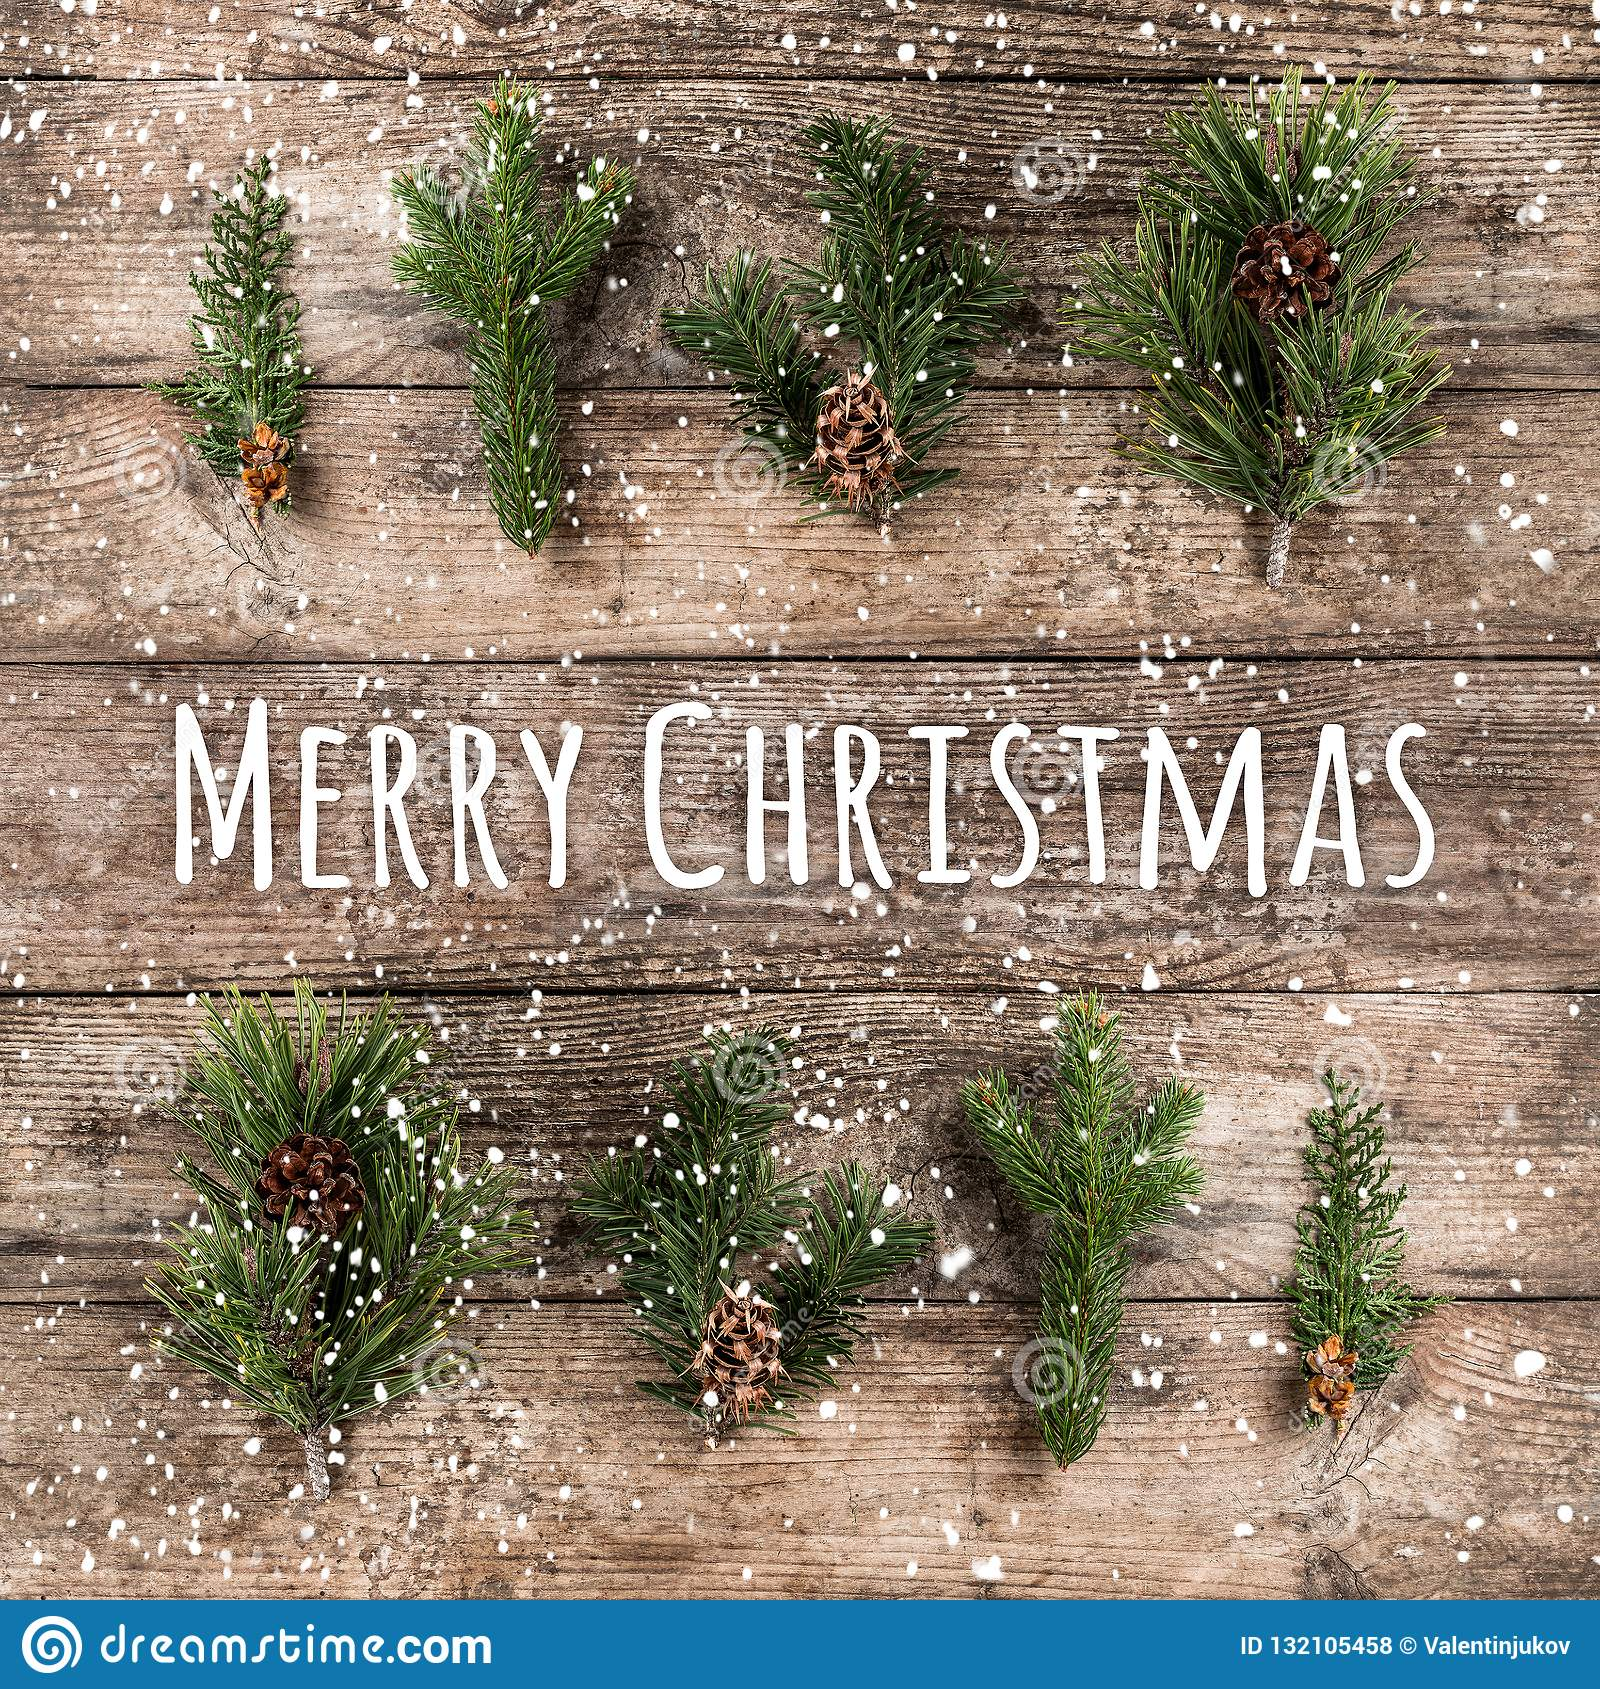 Merry Christmas Typographical on wooden background with fir branches, pine cones and snowflakes on wooden background. Xmas and New